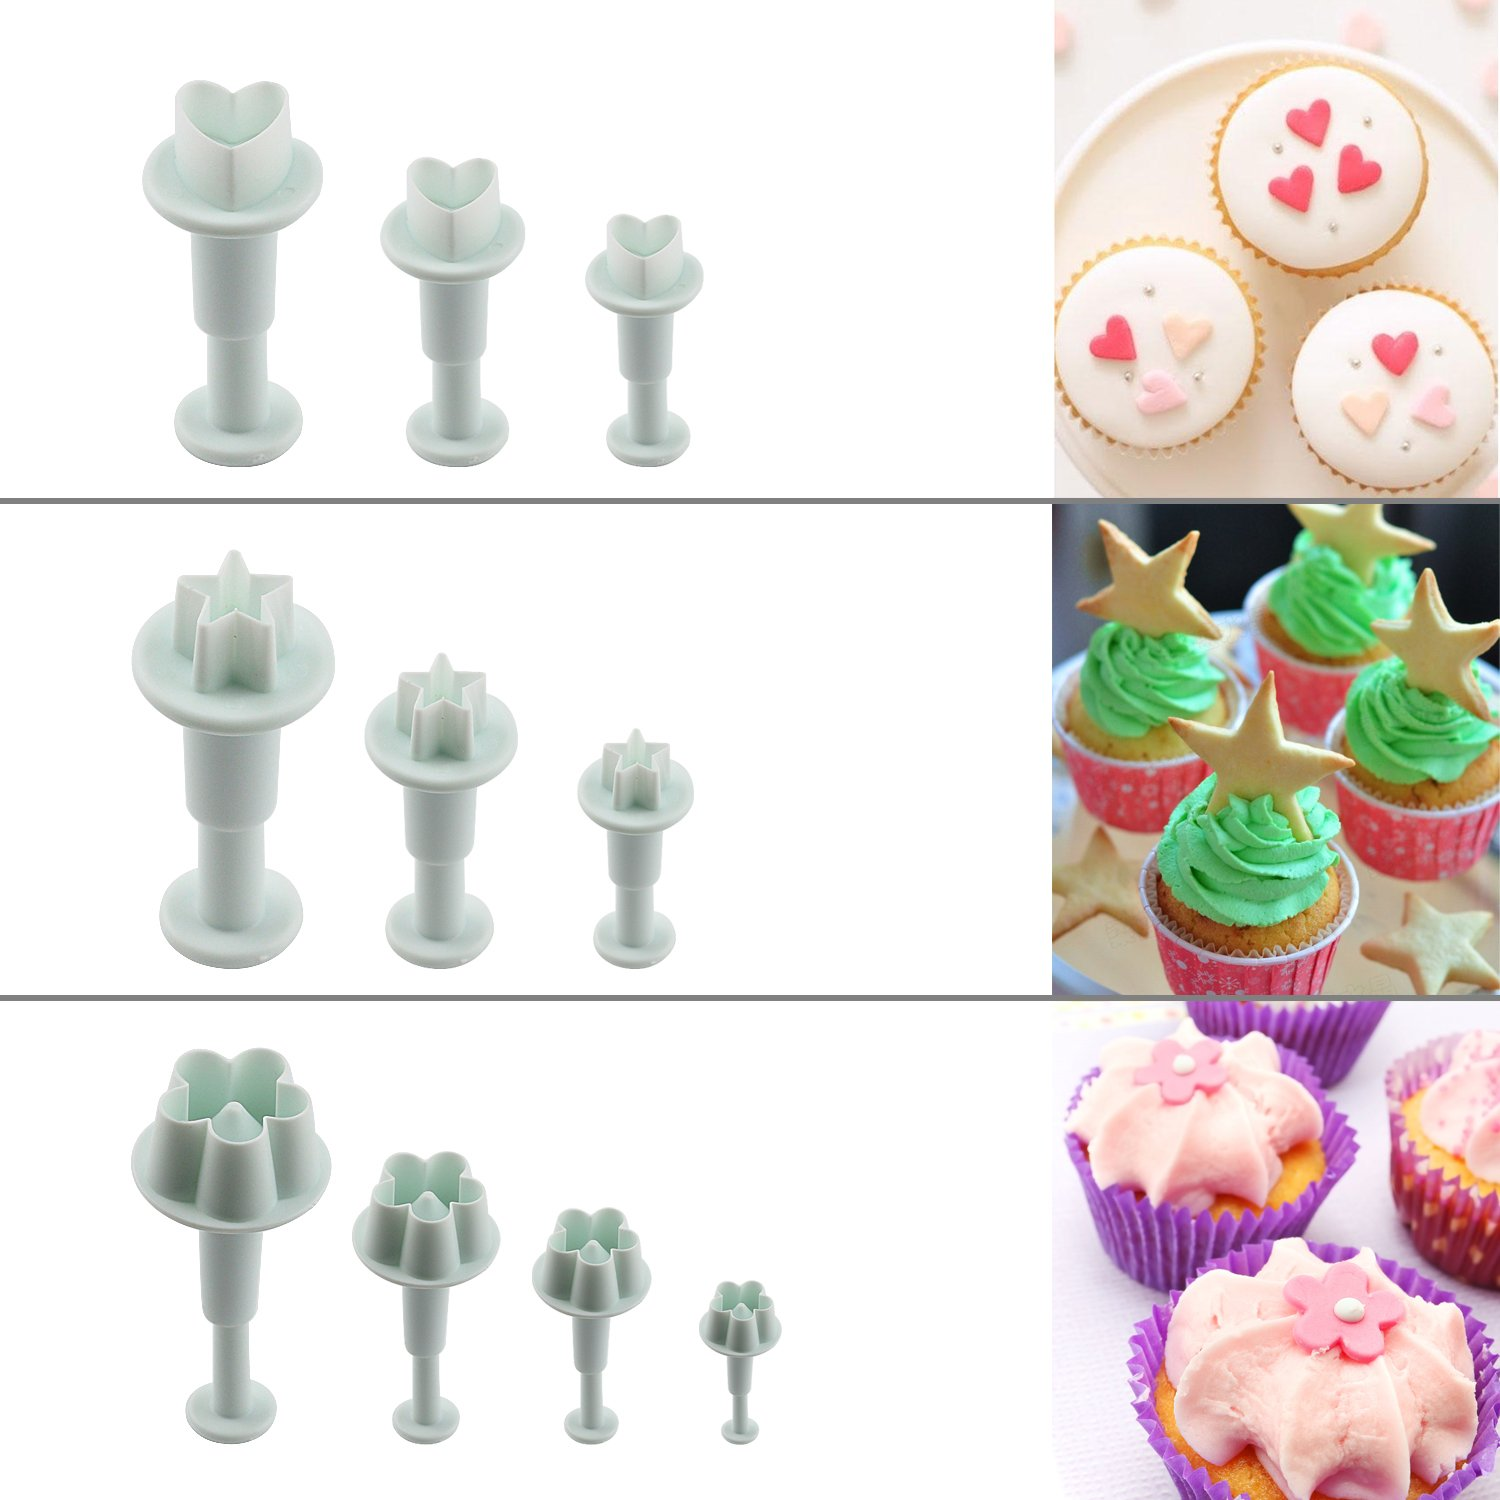 Aoafun 88pcs Fondant Sugarcraft Cake Decorating Plunger Cutters Icing Modelling Tool Kit Set with Rolling Pin, Smoother, Embosser Mold Mould Tools by Aoafun (Image #5)